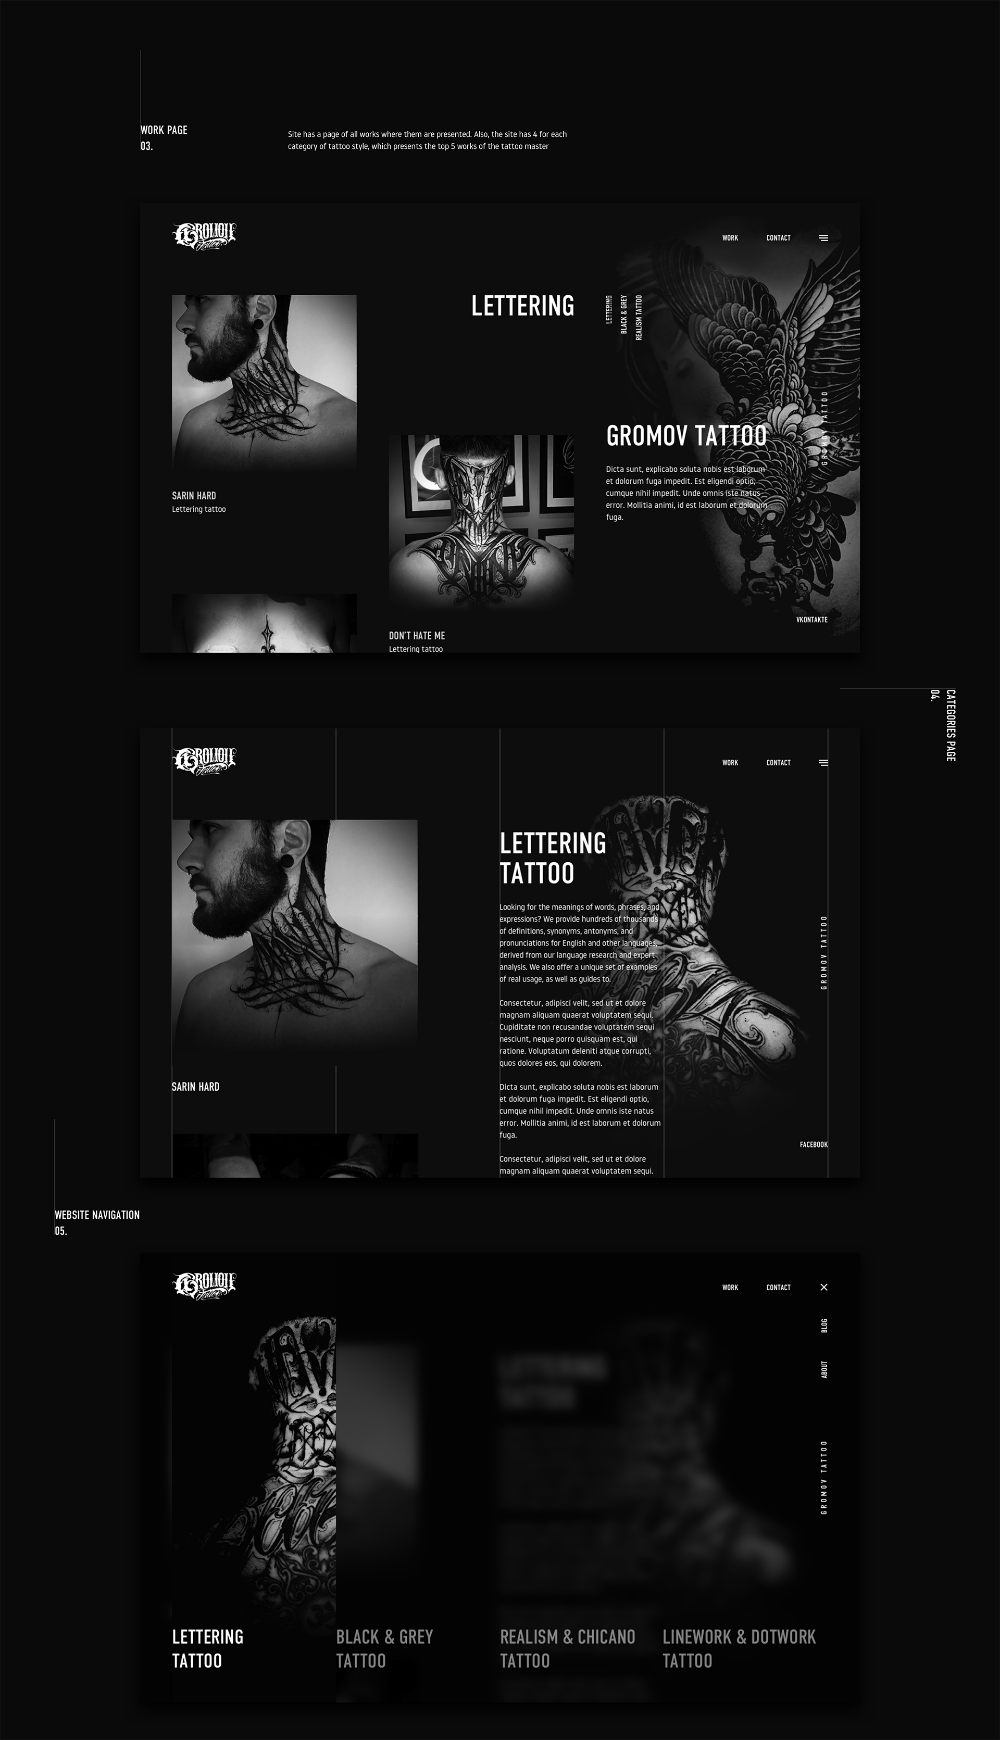 Pin By Evgeniy Lisovskiy On Tattoo Web Design Social Media Design Inspiration Design